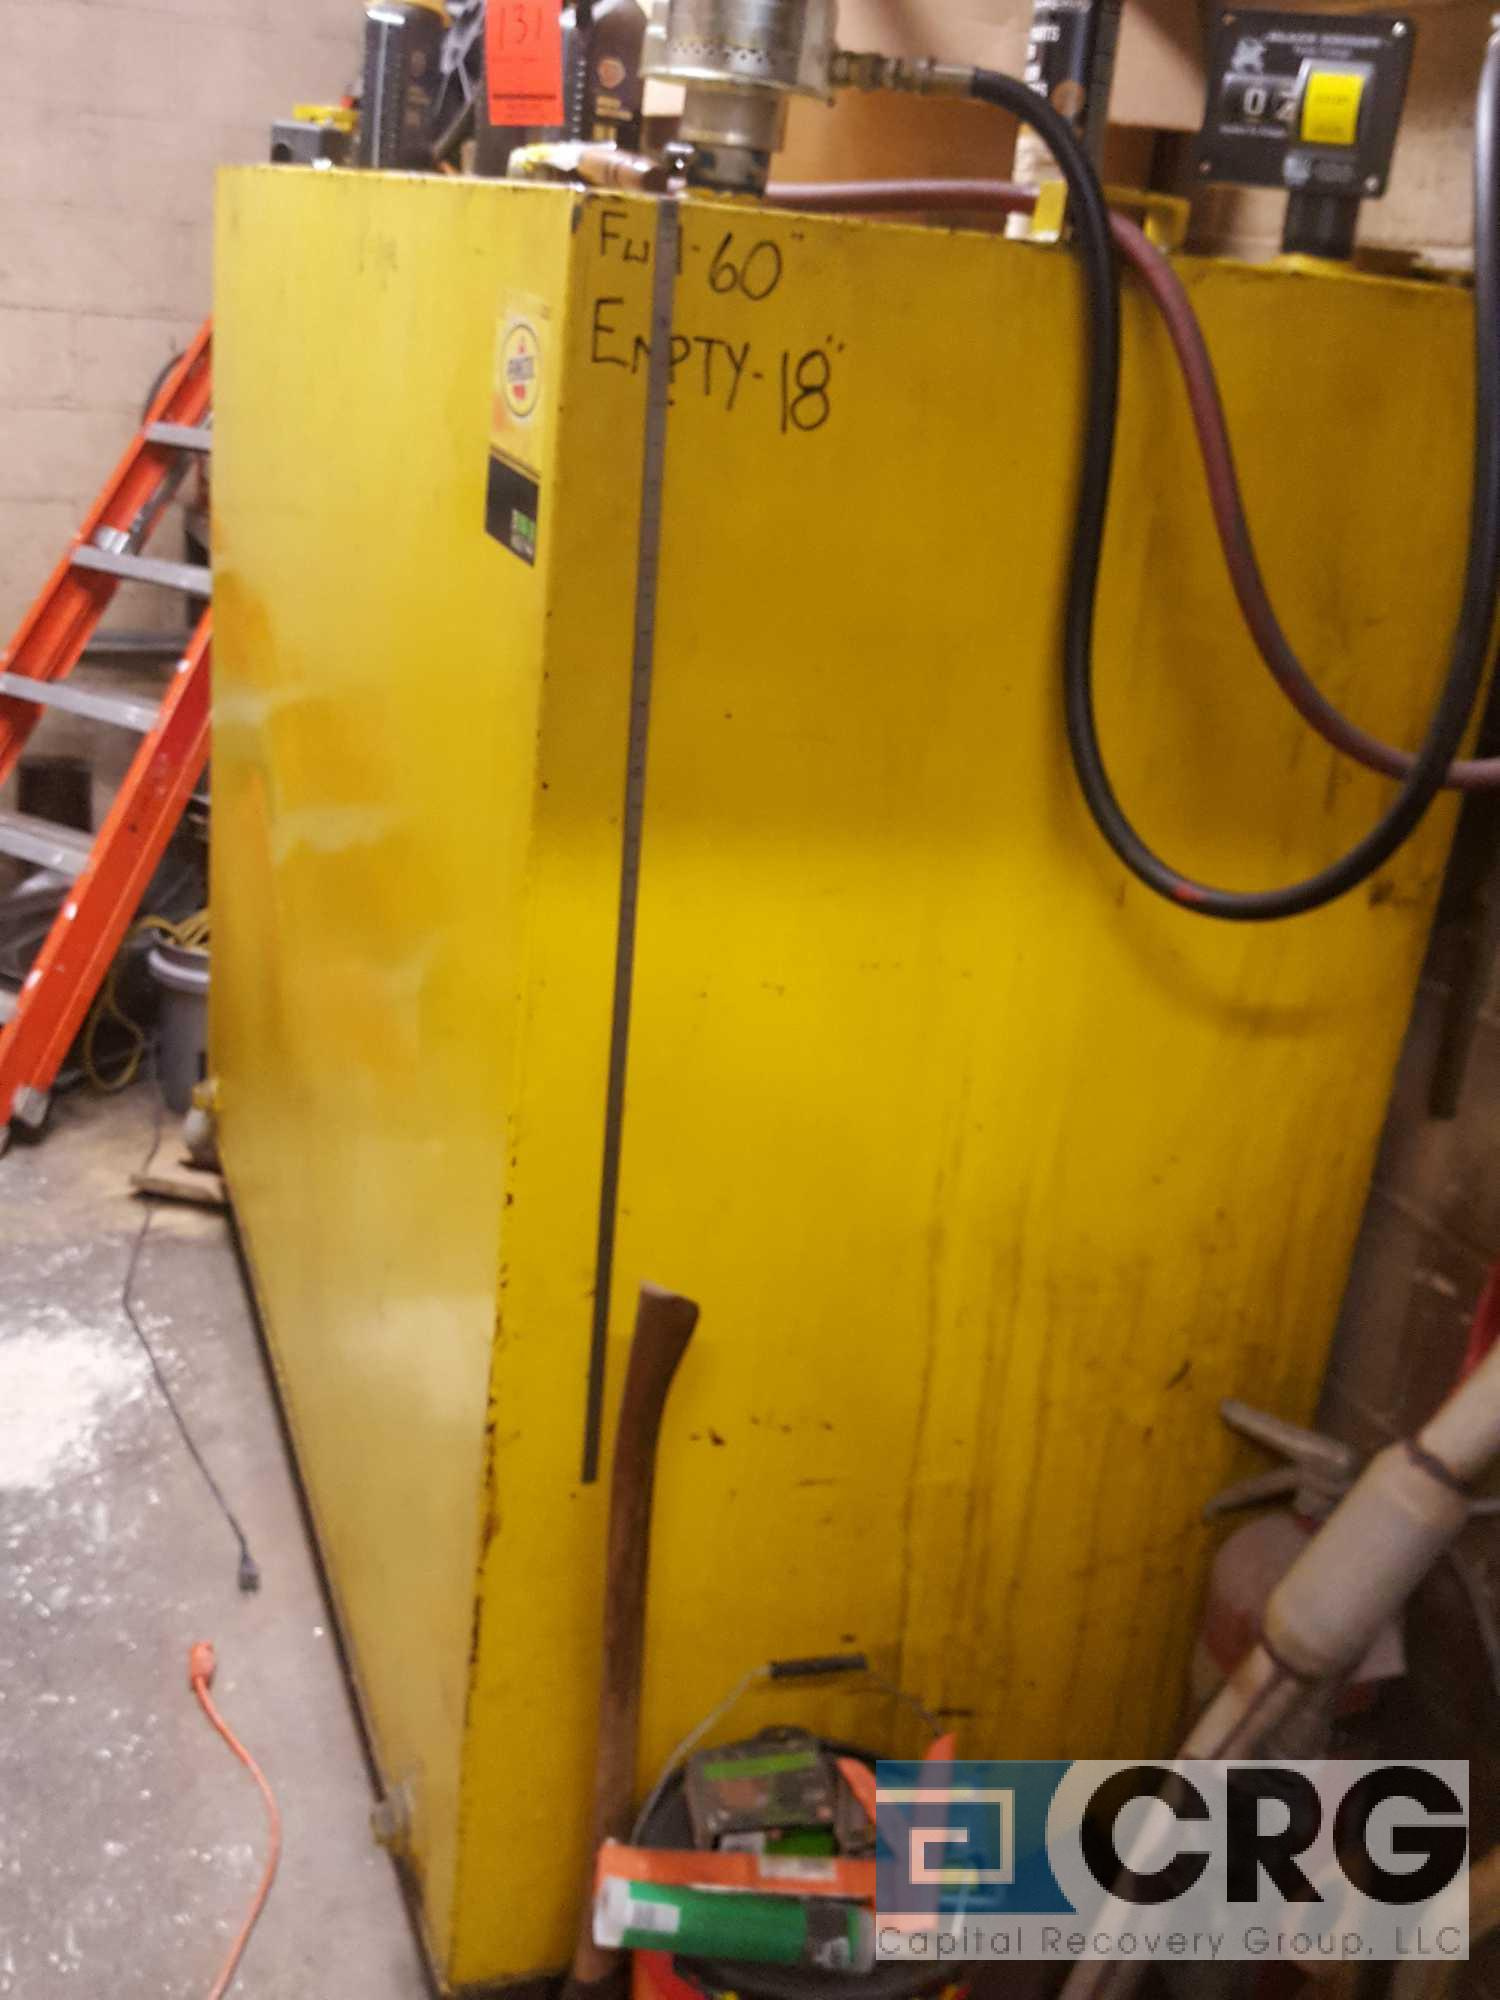 620 plus gallon motor oil, steel tank, with Graco pump and gauge, 78 inch long x 42 inch wide x 62